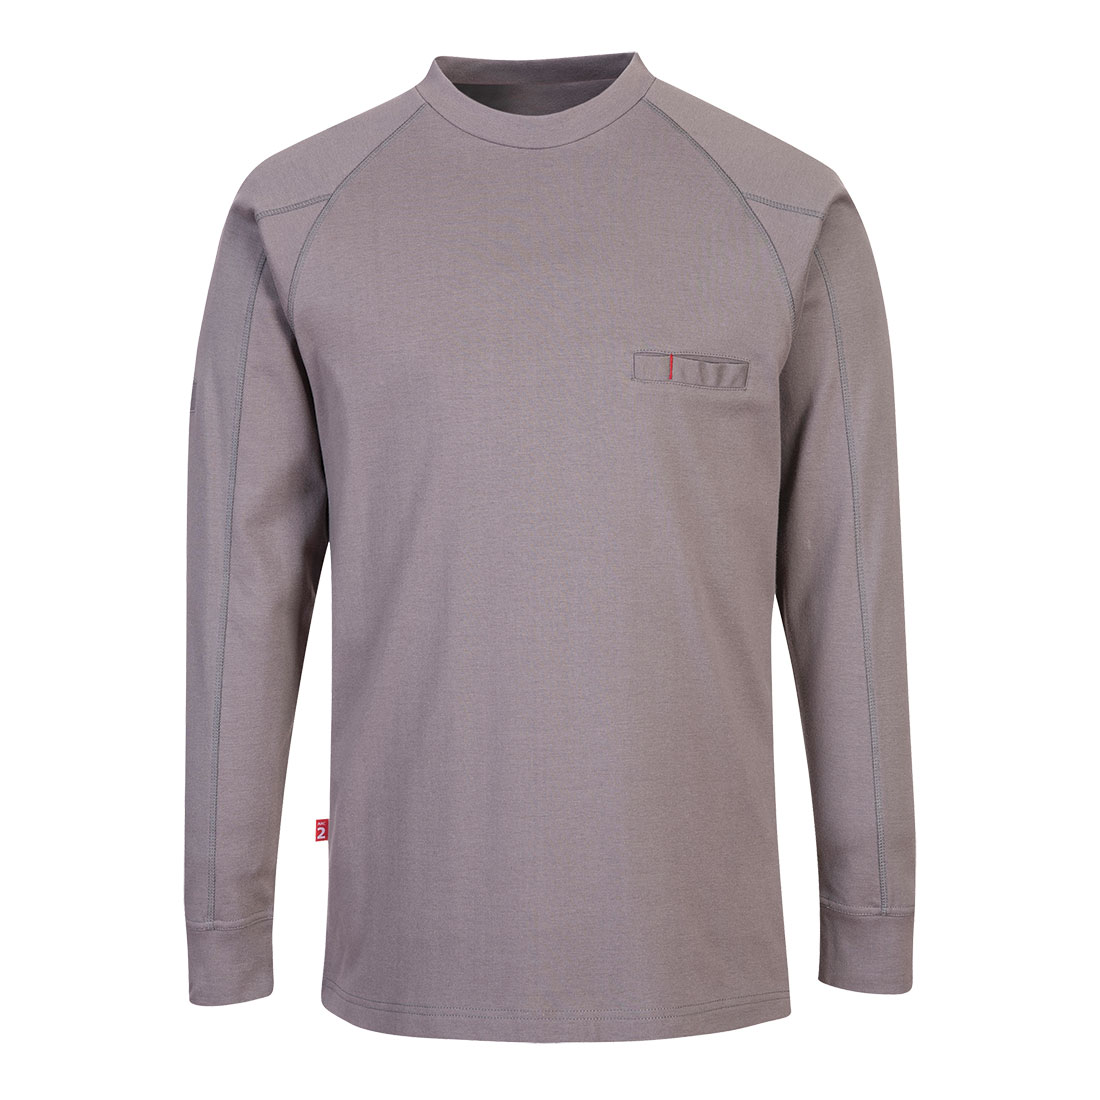 Flame Resistant, T-Shirts, Polos and Shirts